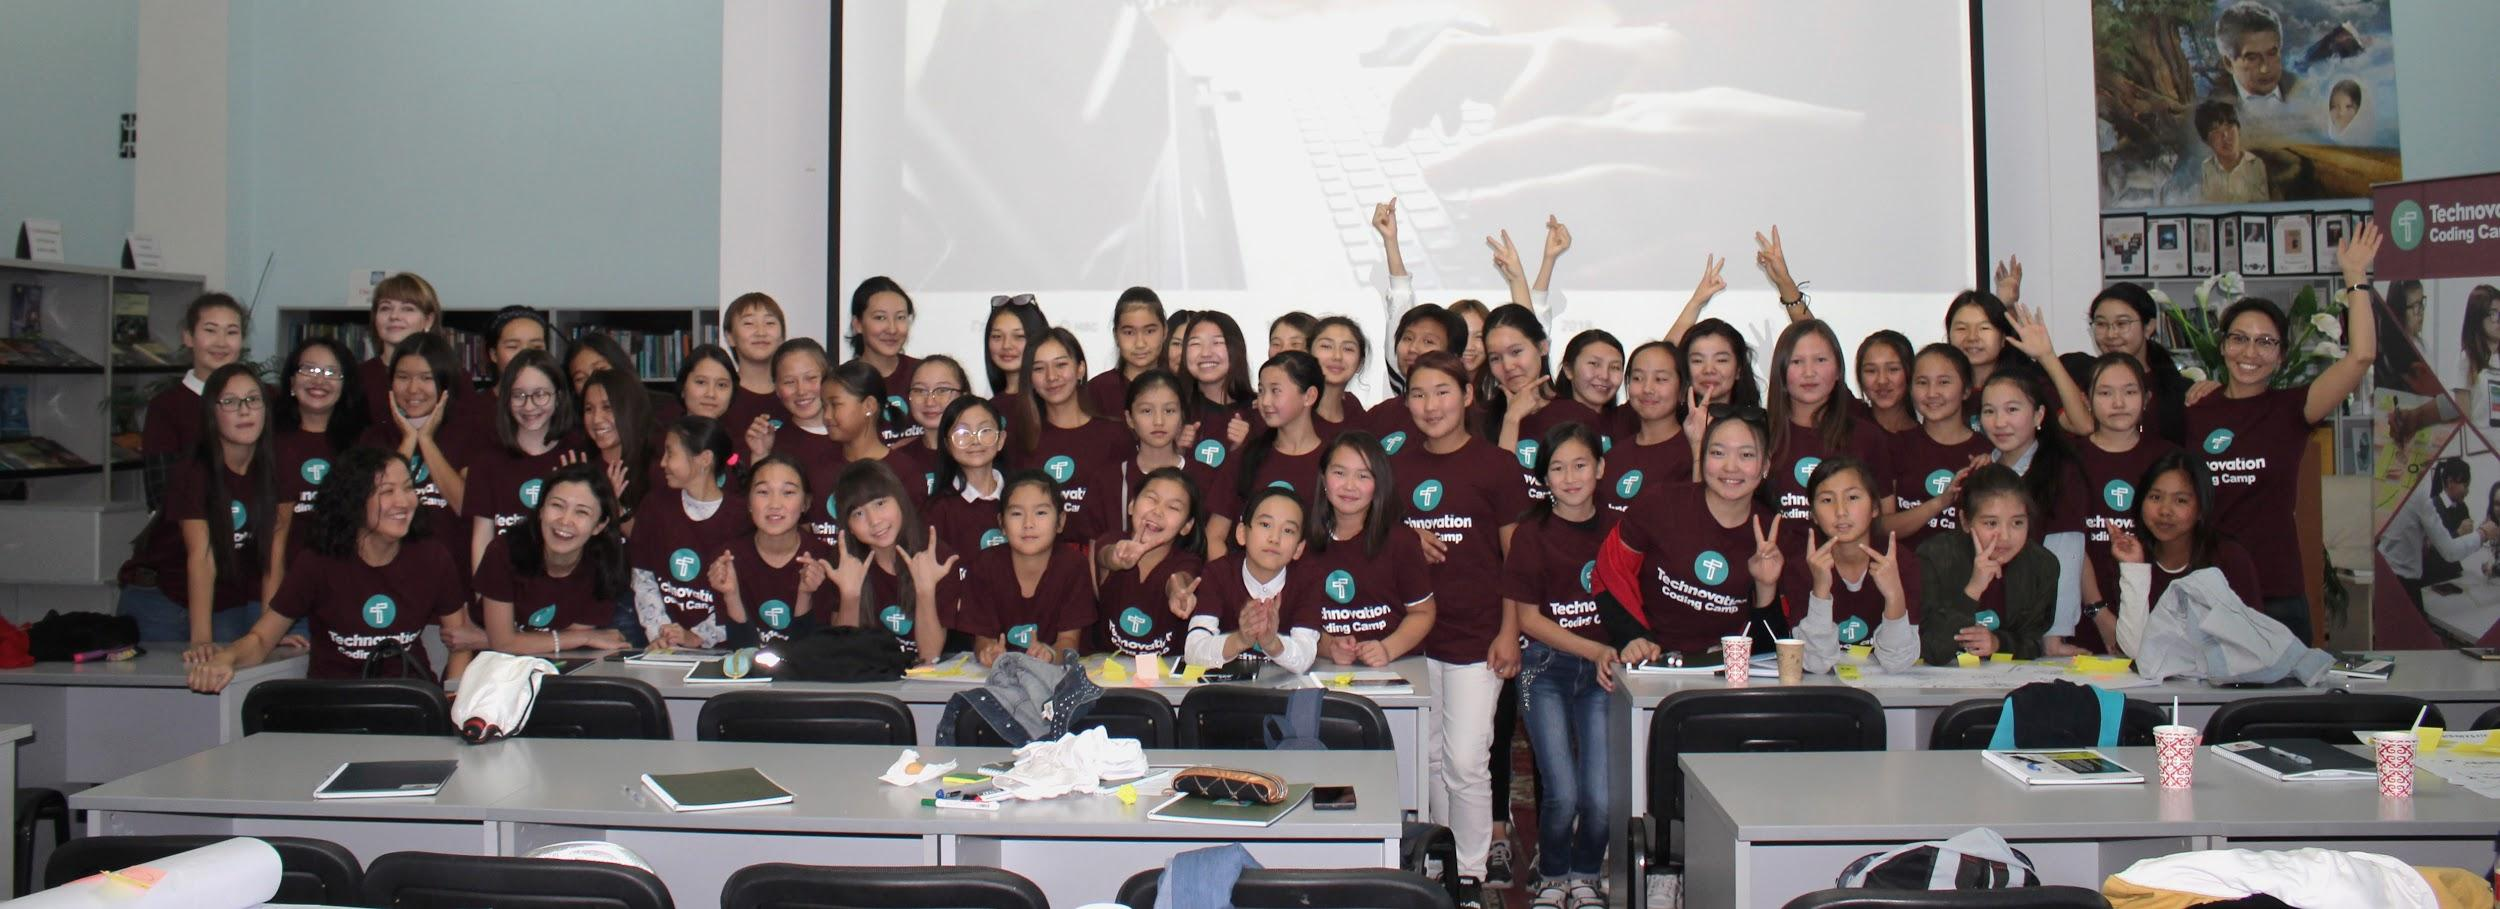 An enthusiastic class of young women---future innovators of technology